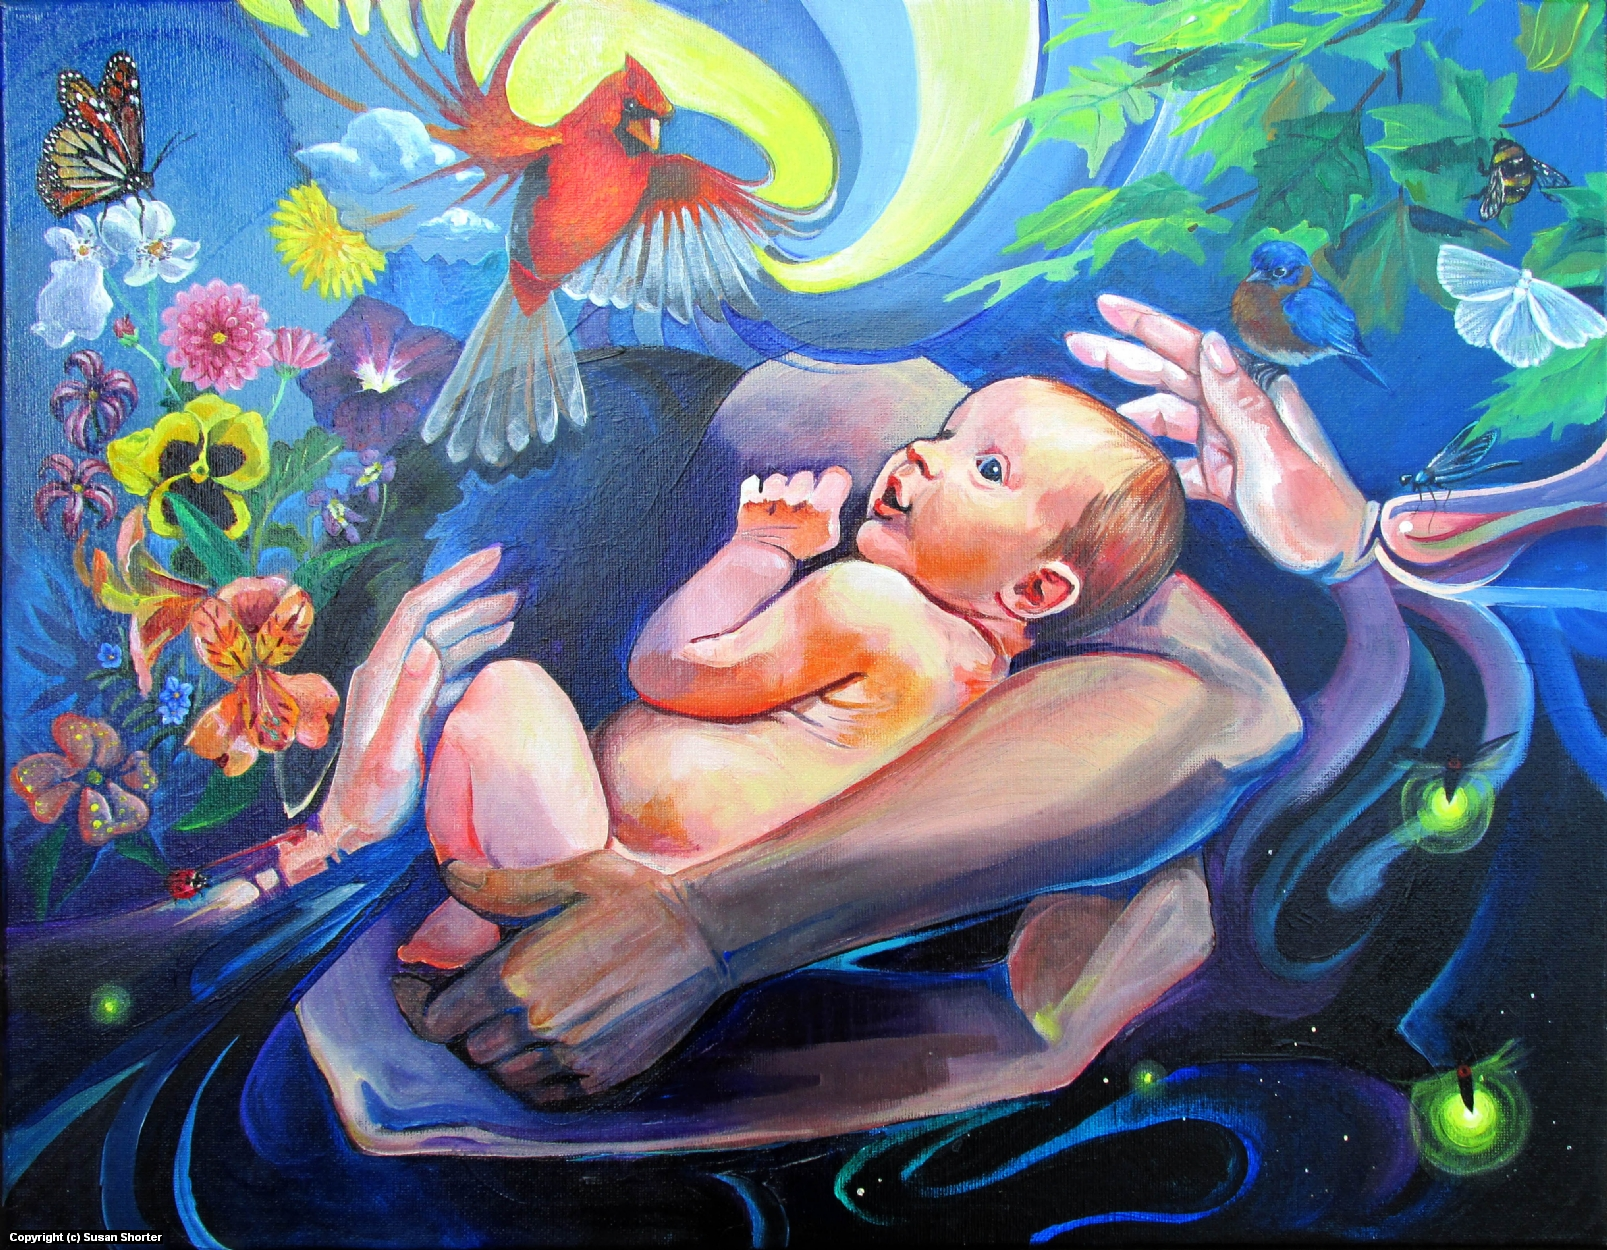 Born Into the Arms of Imagination Artwork by Susan Shorter